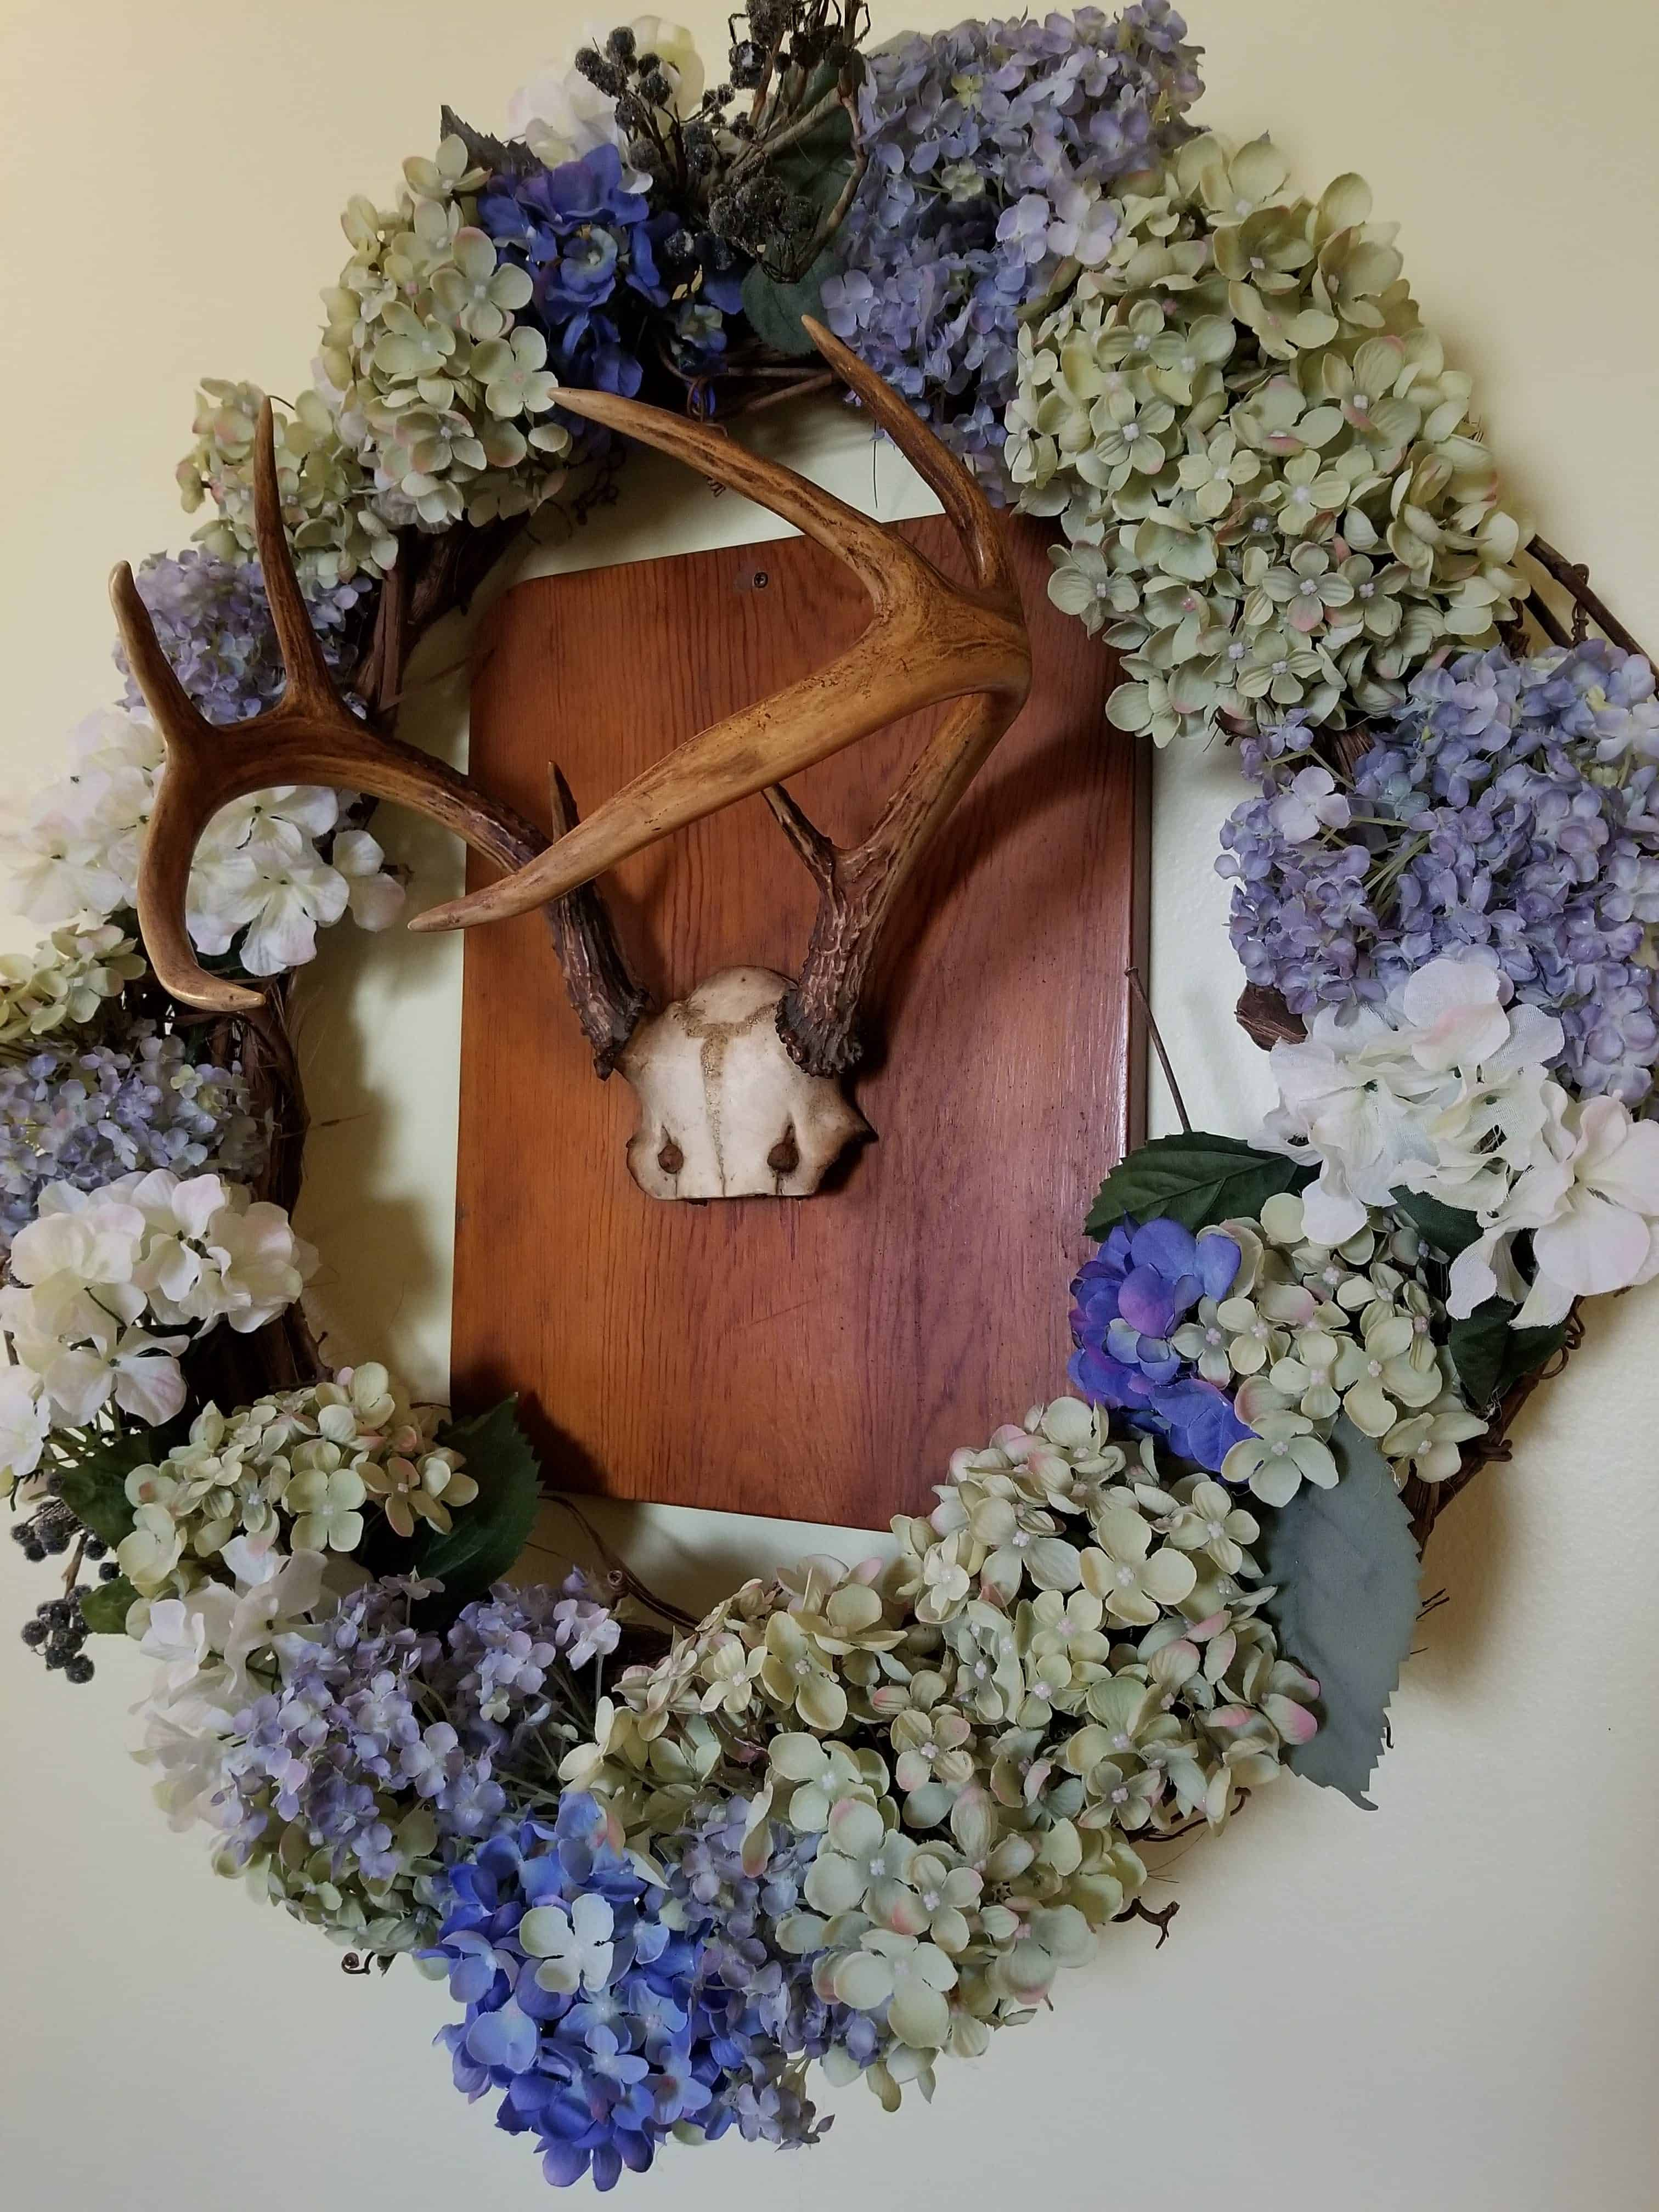 Deer Antlers, Decorating with Deer Antlers, Hydrangea wreath with deer antlers